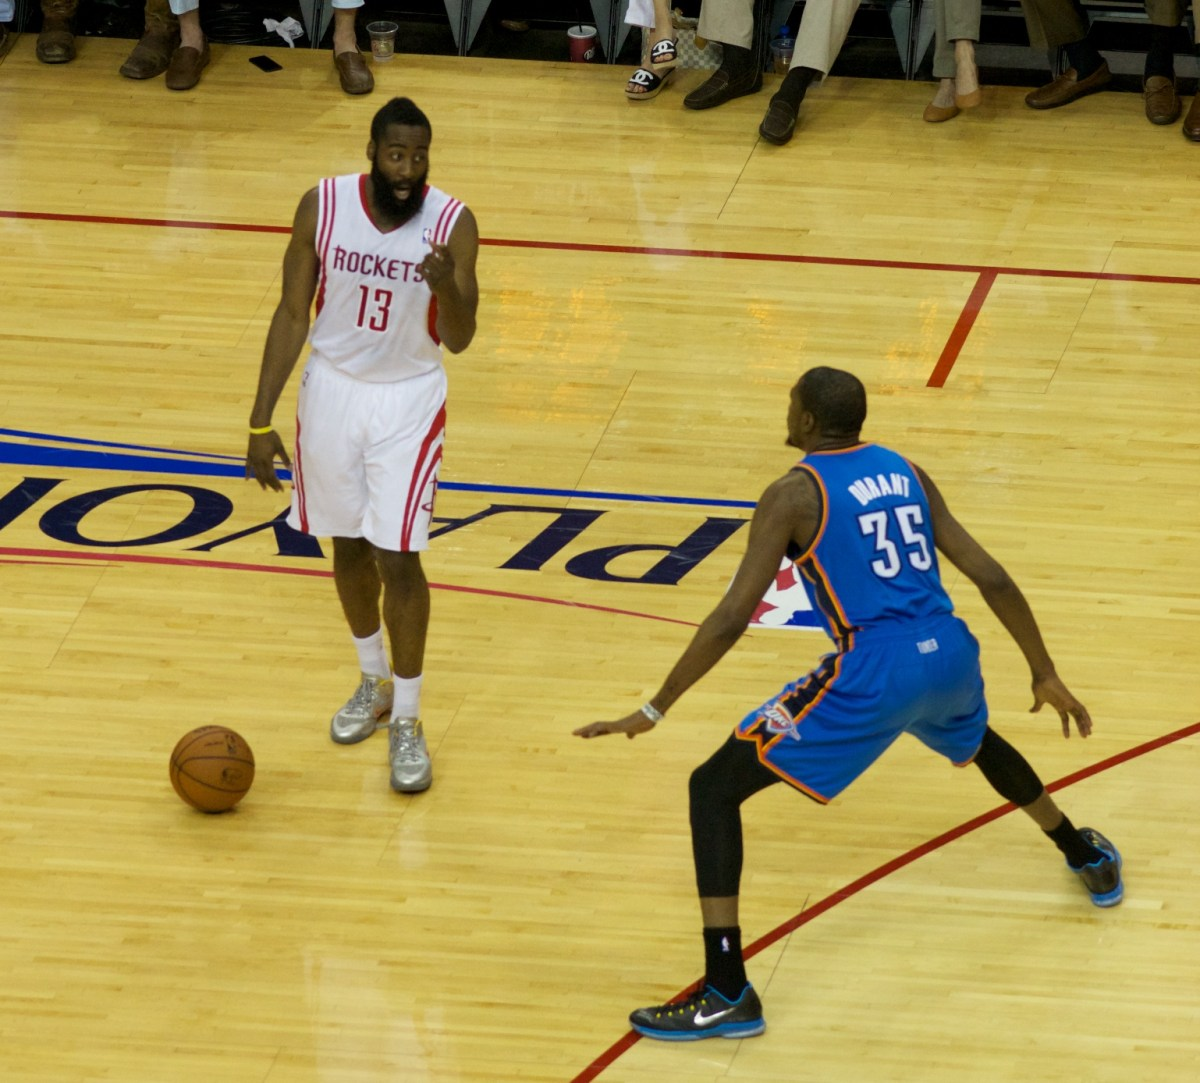 James Harden In Okc: Double Crossover Dribble By James Harden